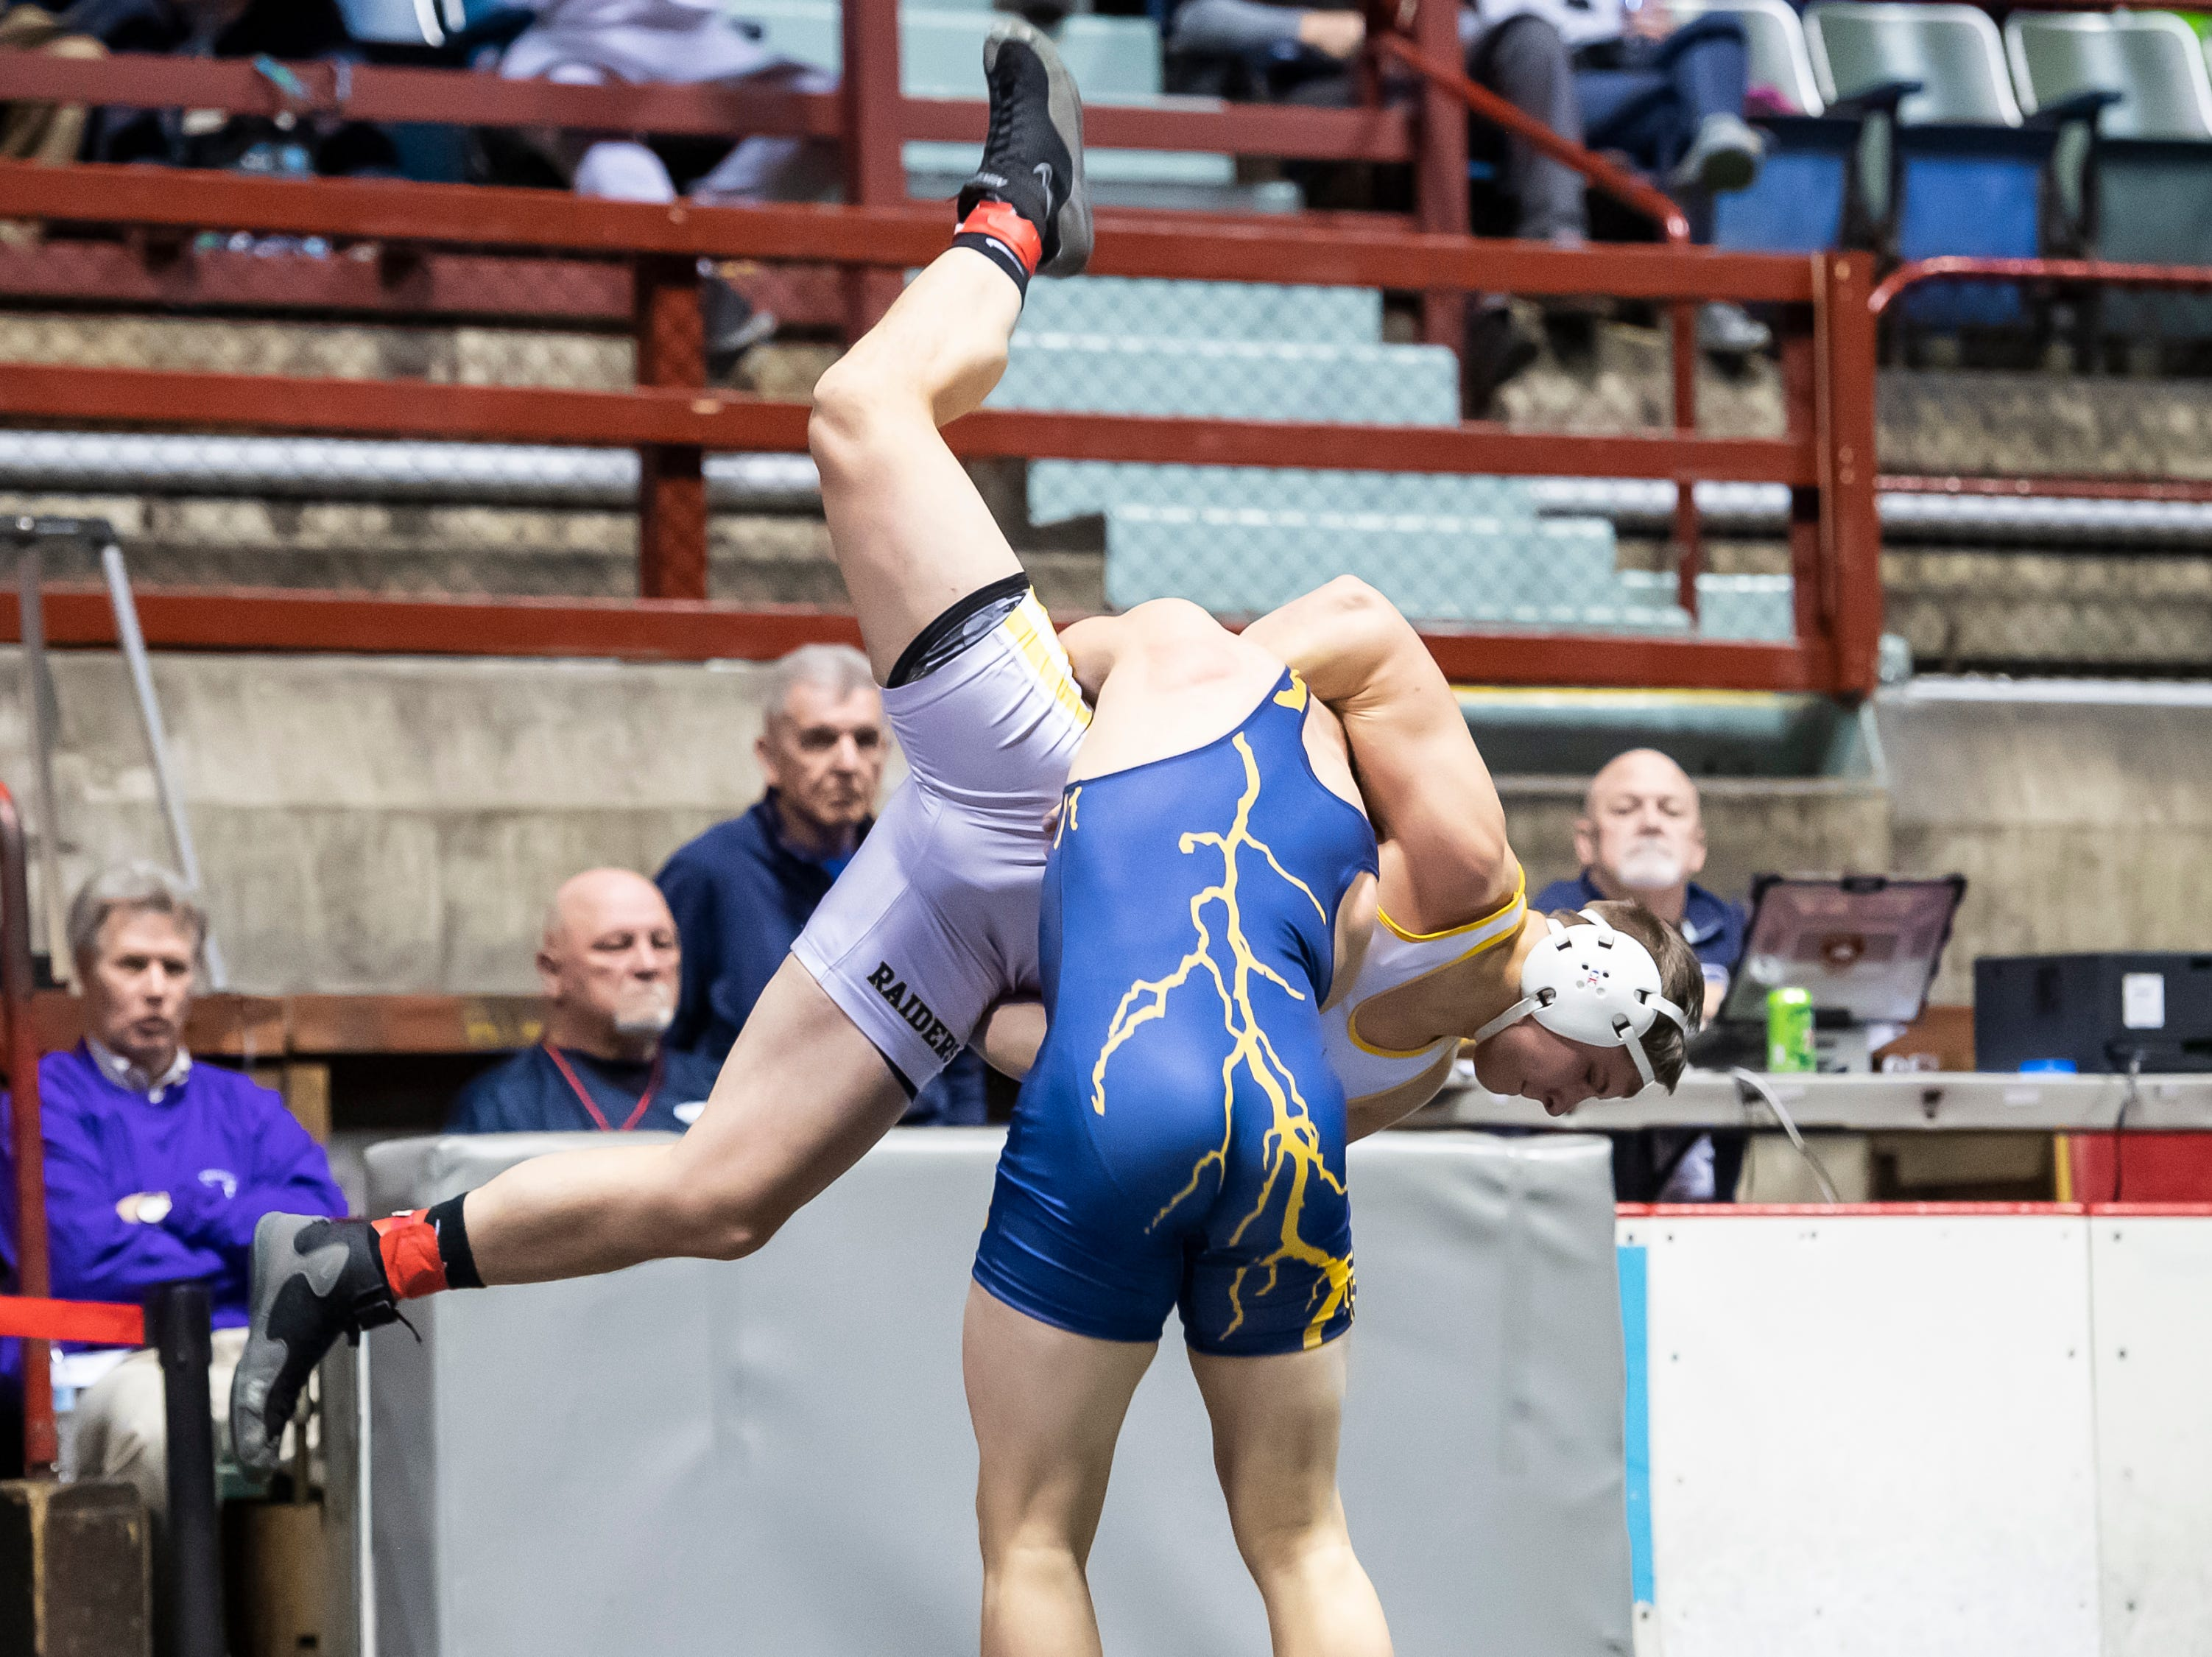 Littlestown's Jason Penton takes down Eastern Lebanon's Trey Donmoyer during a 182-pound championship bout at the District 3 wrestling championships at Hersheypark Arena Saturday, February 23, 2019. Penton won by decision 6-1.